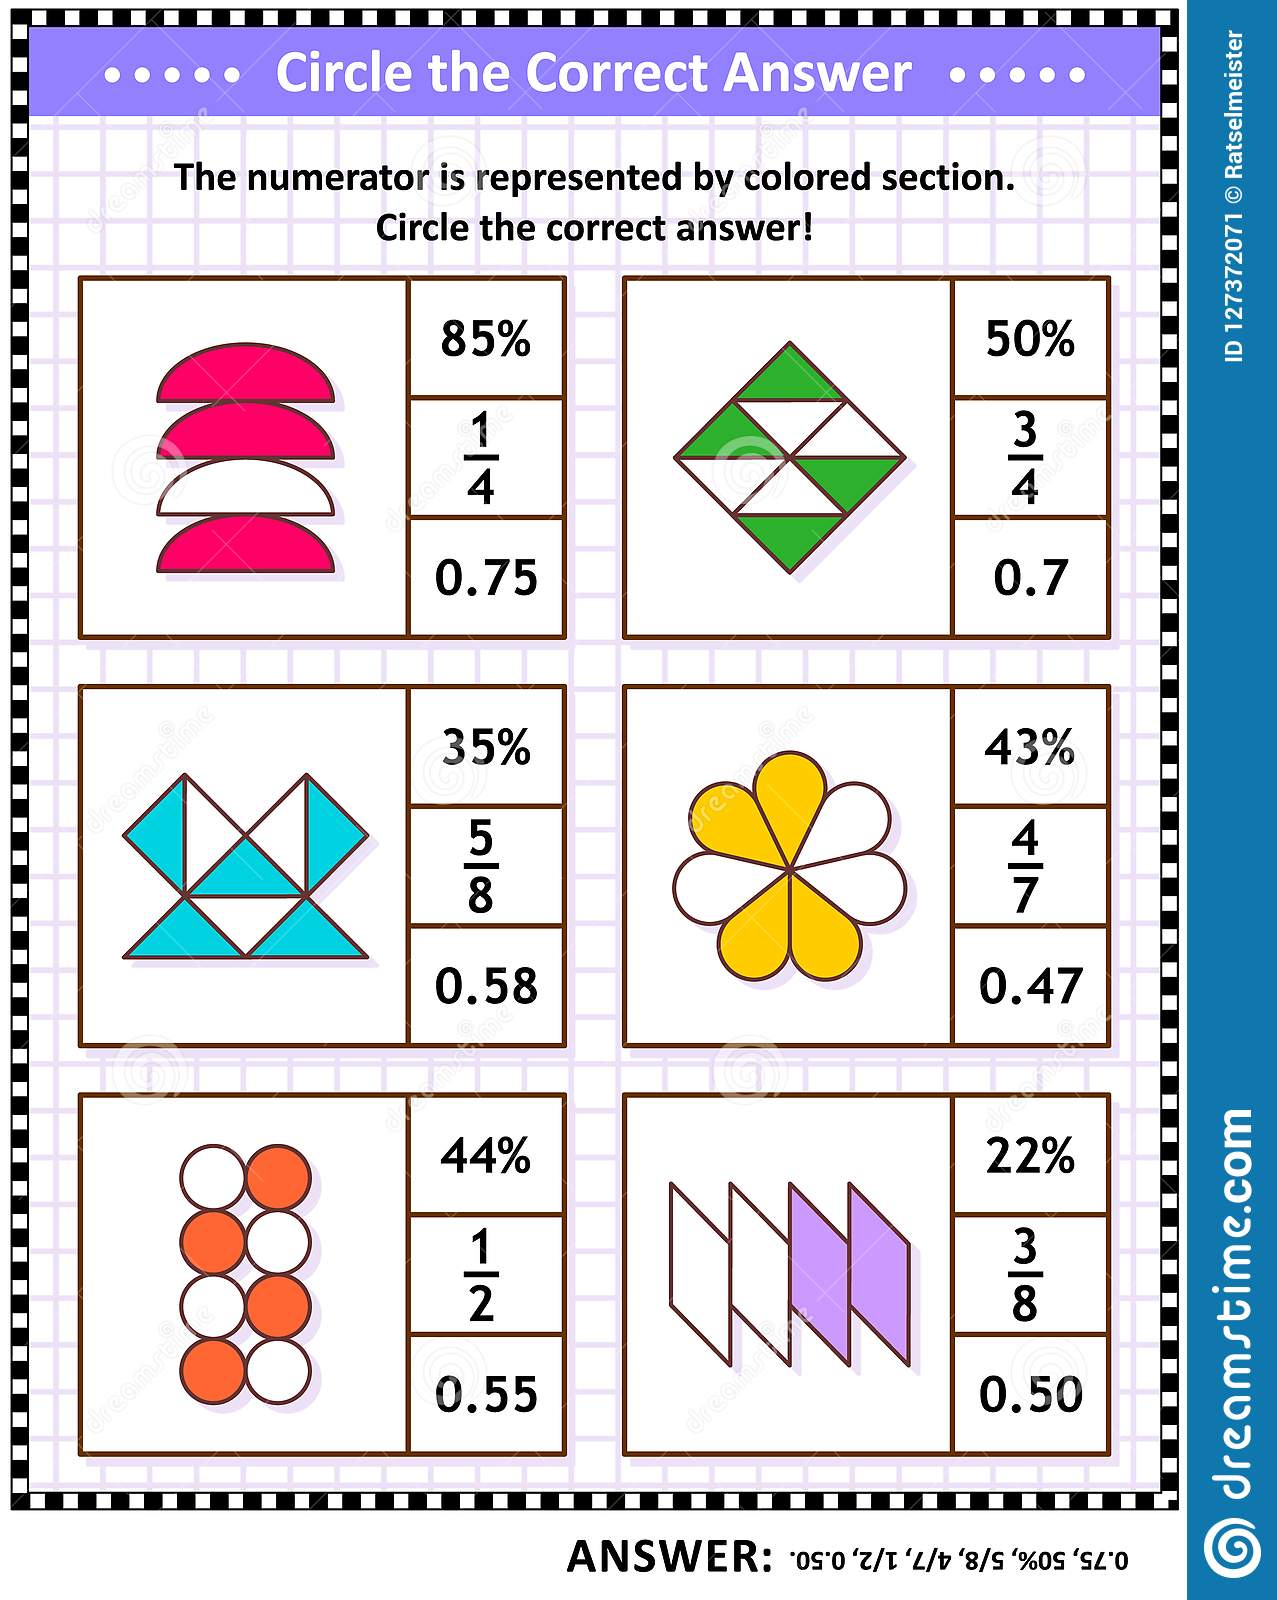 Math Skills Training Puzzle Or Worksheet With Visual